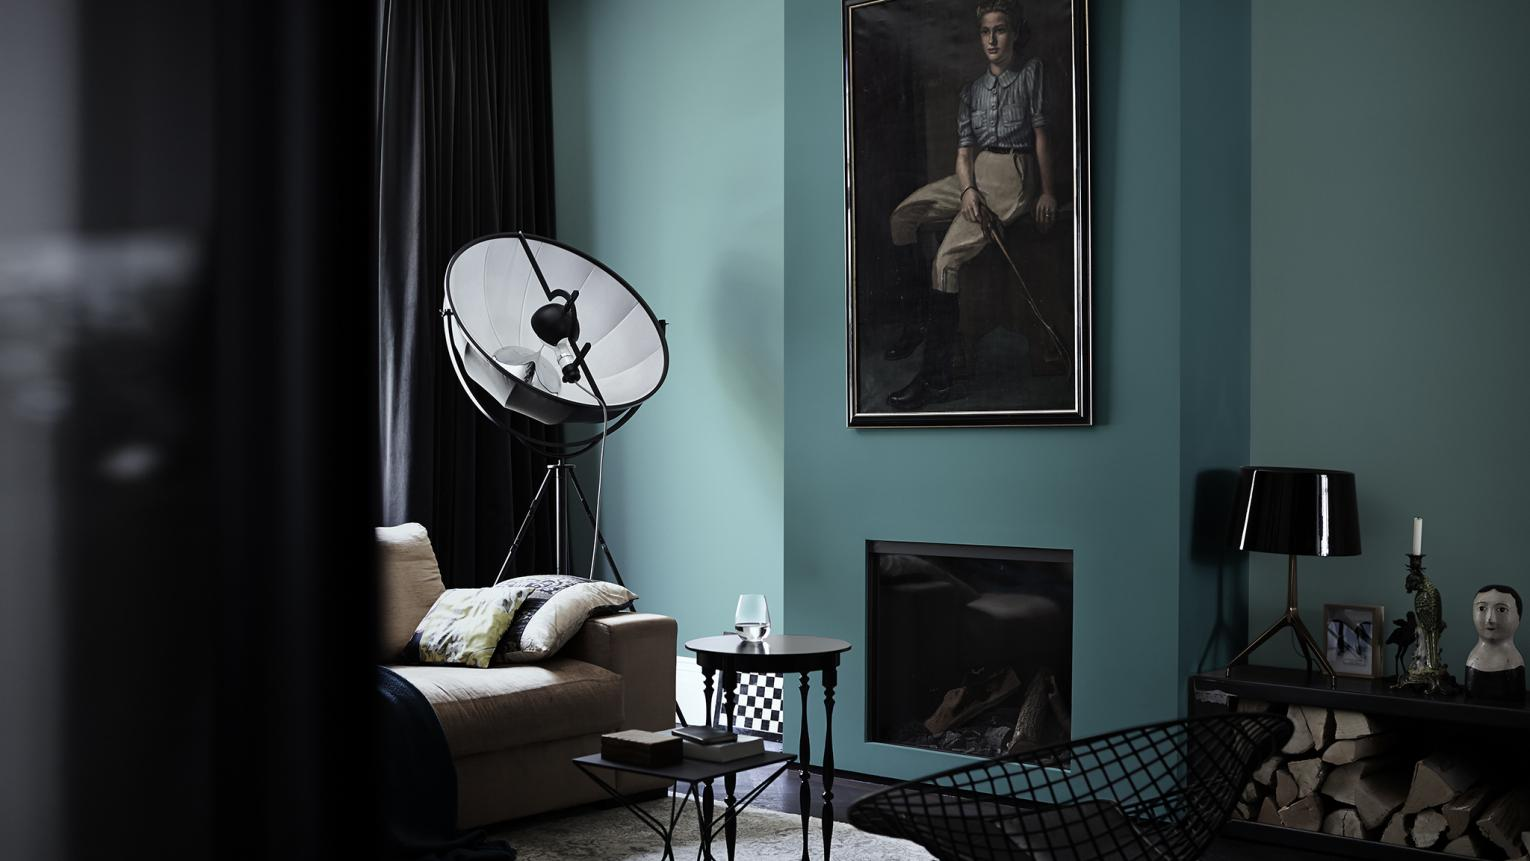 For bold living room decor ideas, contrast beautiful lagoon blue walls with furniture in black and charcoal shades.